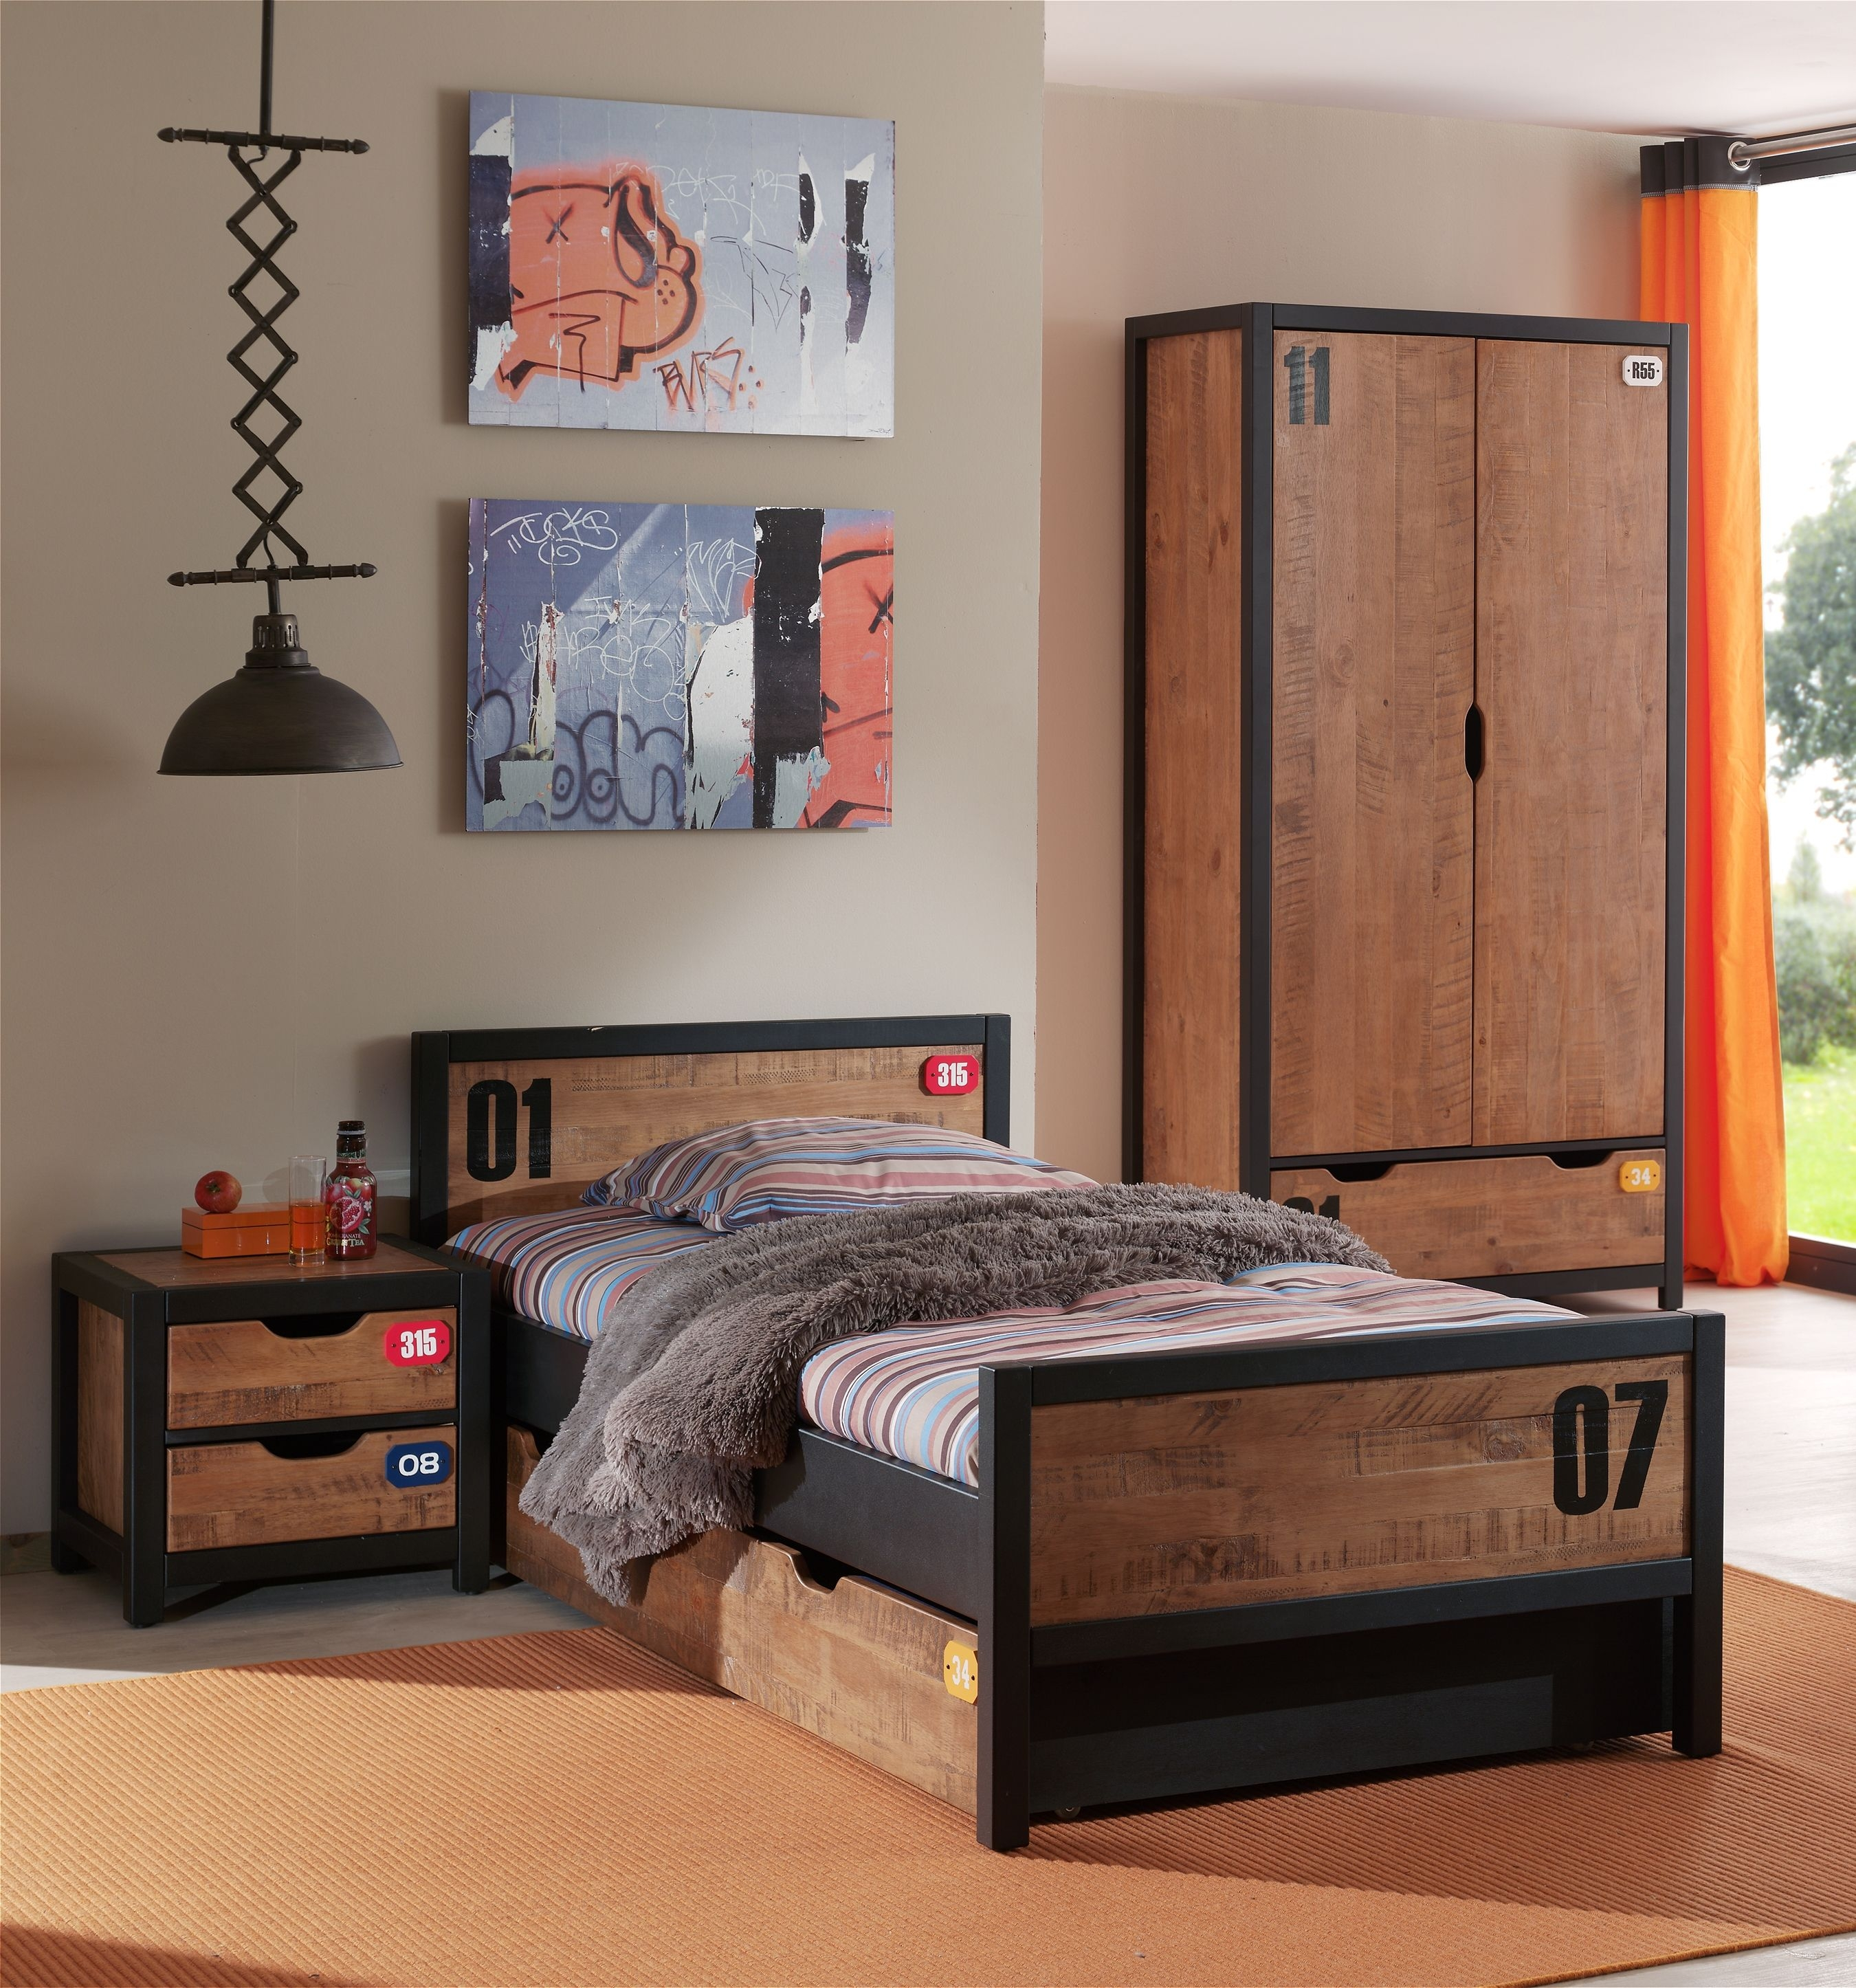 chambre avec armoire 2 portes bois massif marron. Black Bedroom Furniture Sets. Home Design Ideas